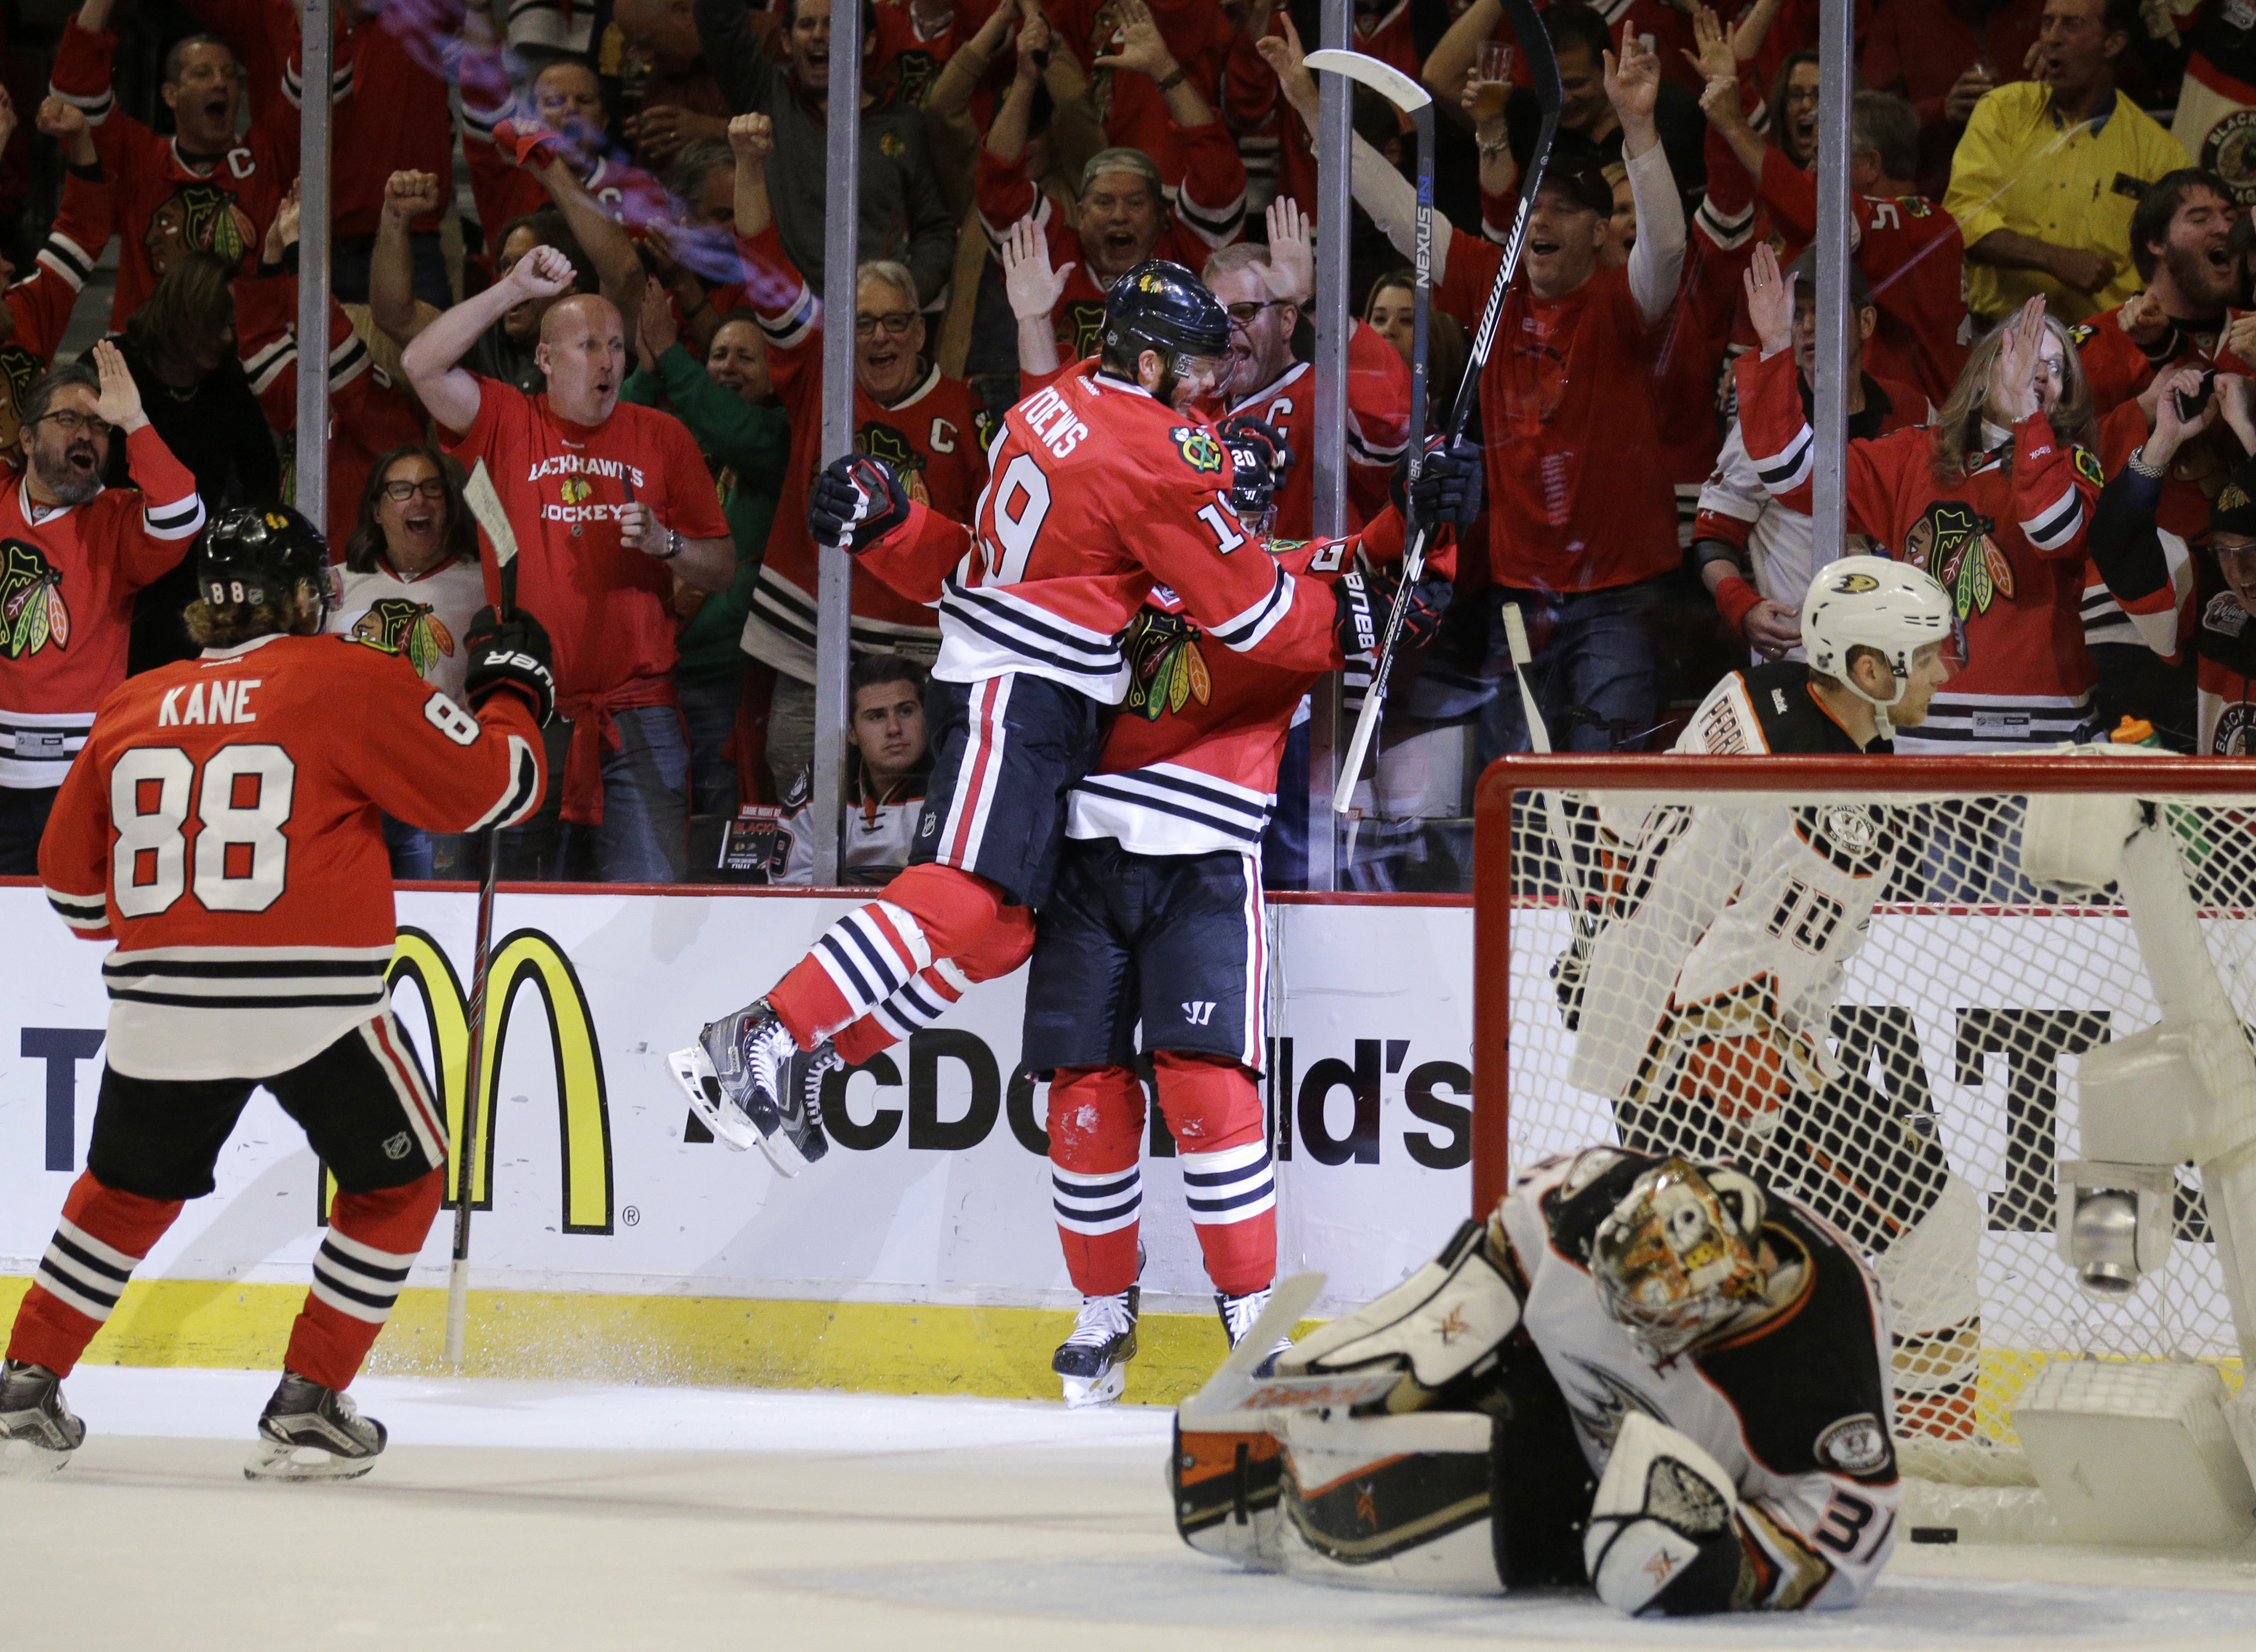 Chicago Blackhawks left wing Brandon Saad (20) celebrates his goal against the Anaheim Ducks with Chicago Blackhawks center Jonathan Toews (19) during the second period in Game 6 of the Western Conference finals of the NHL hockey Stanley Cup Playoffs, Wed